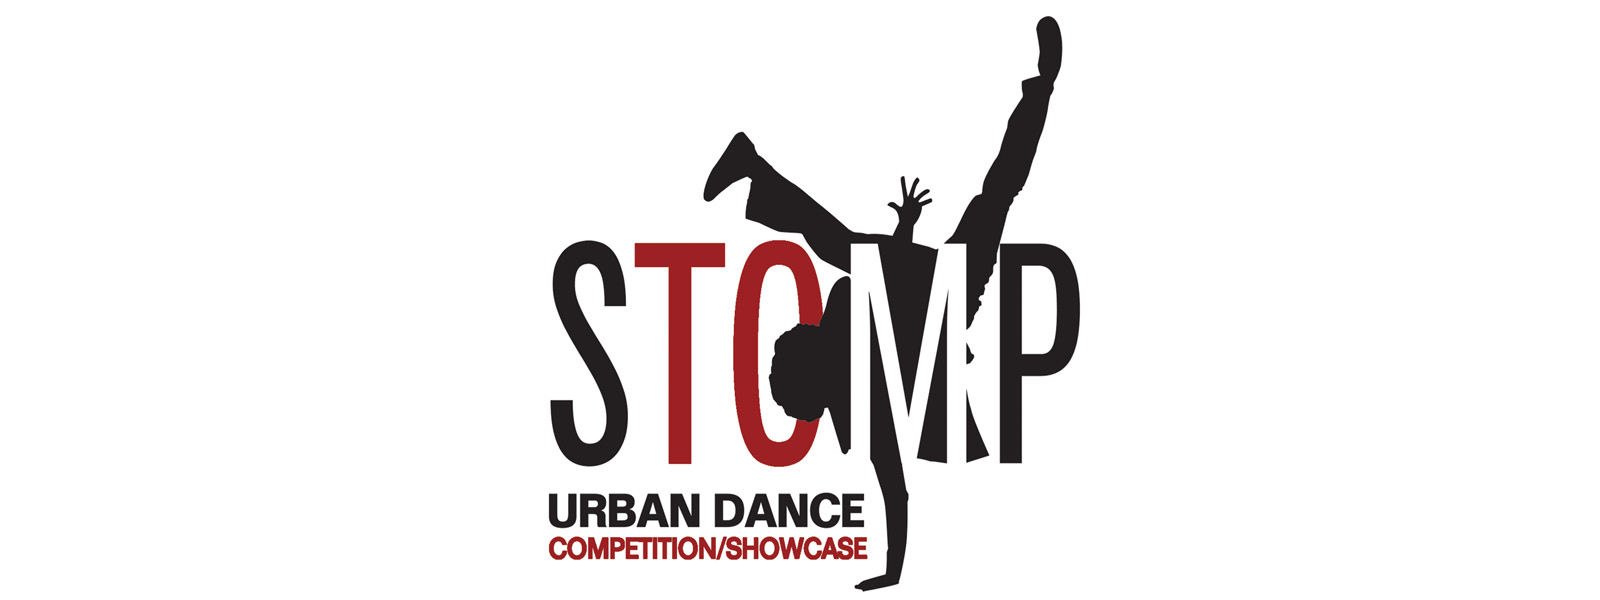 June 5: StompTO Urban Dance Competition/Showcase ft. Daei Elite Dance Crew